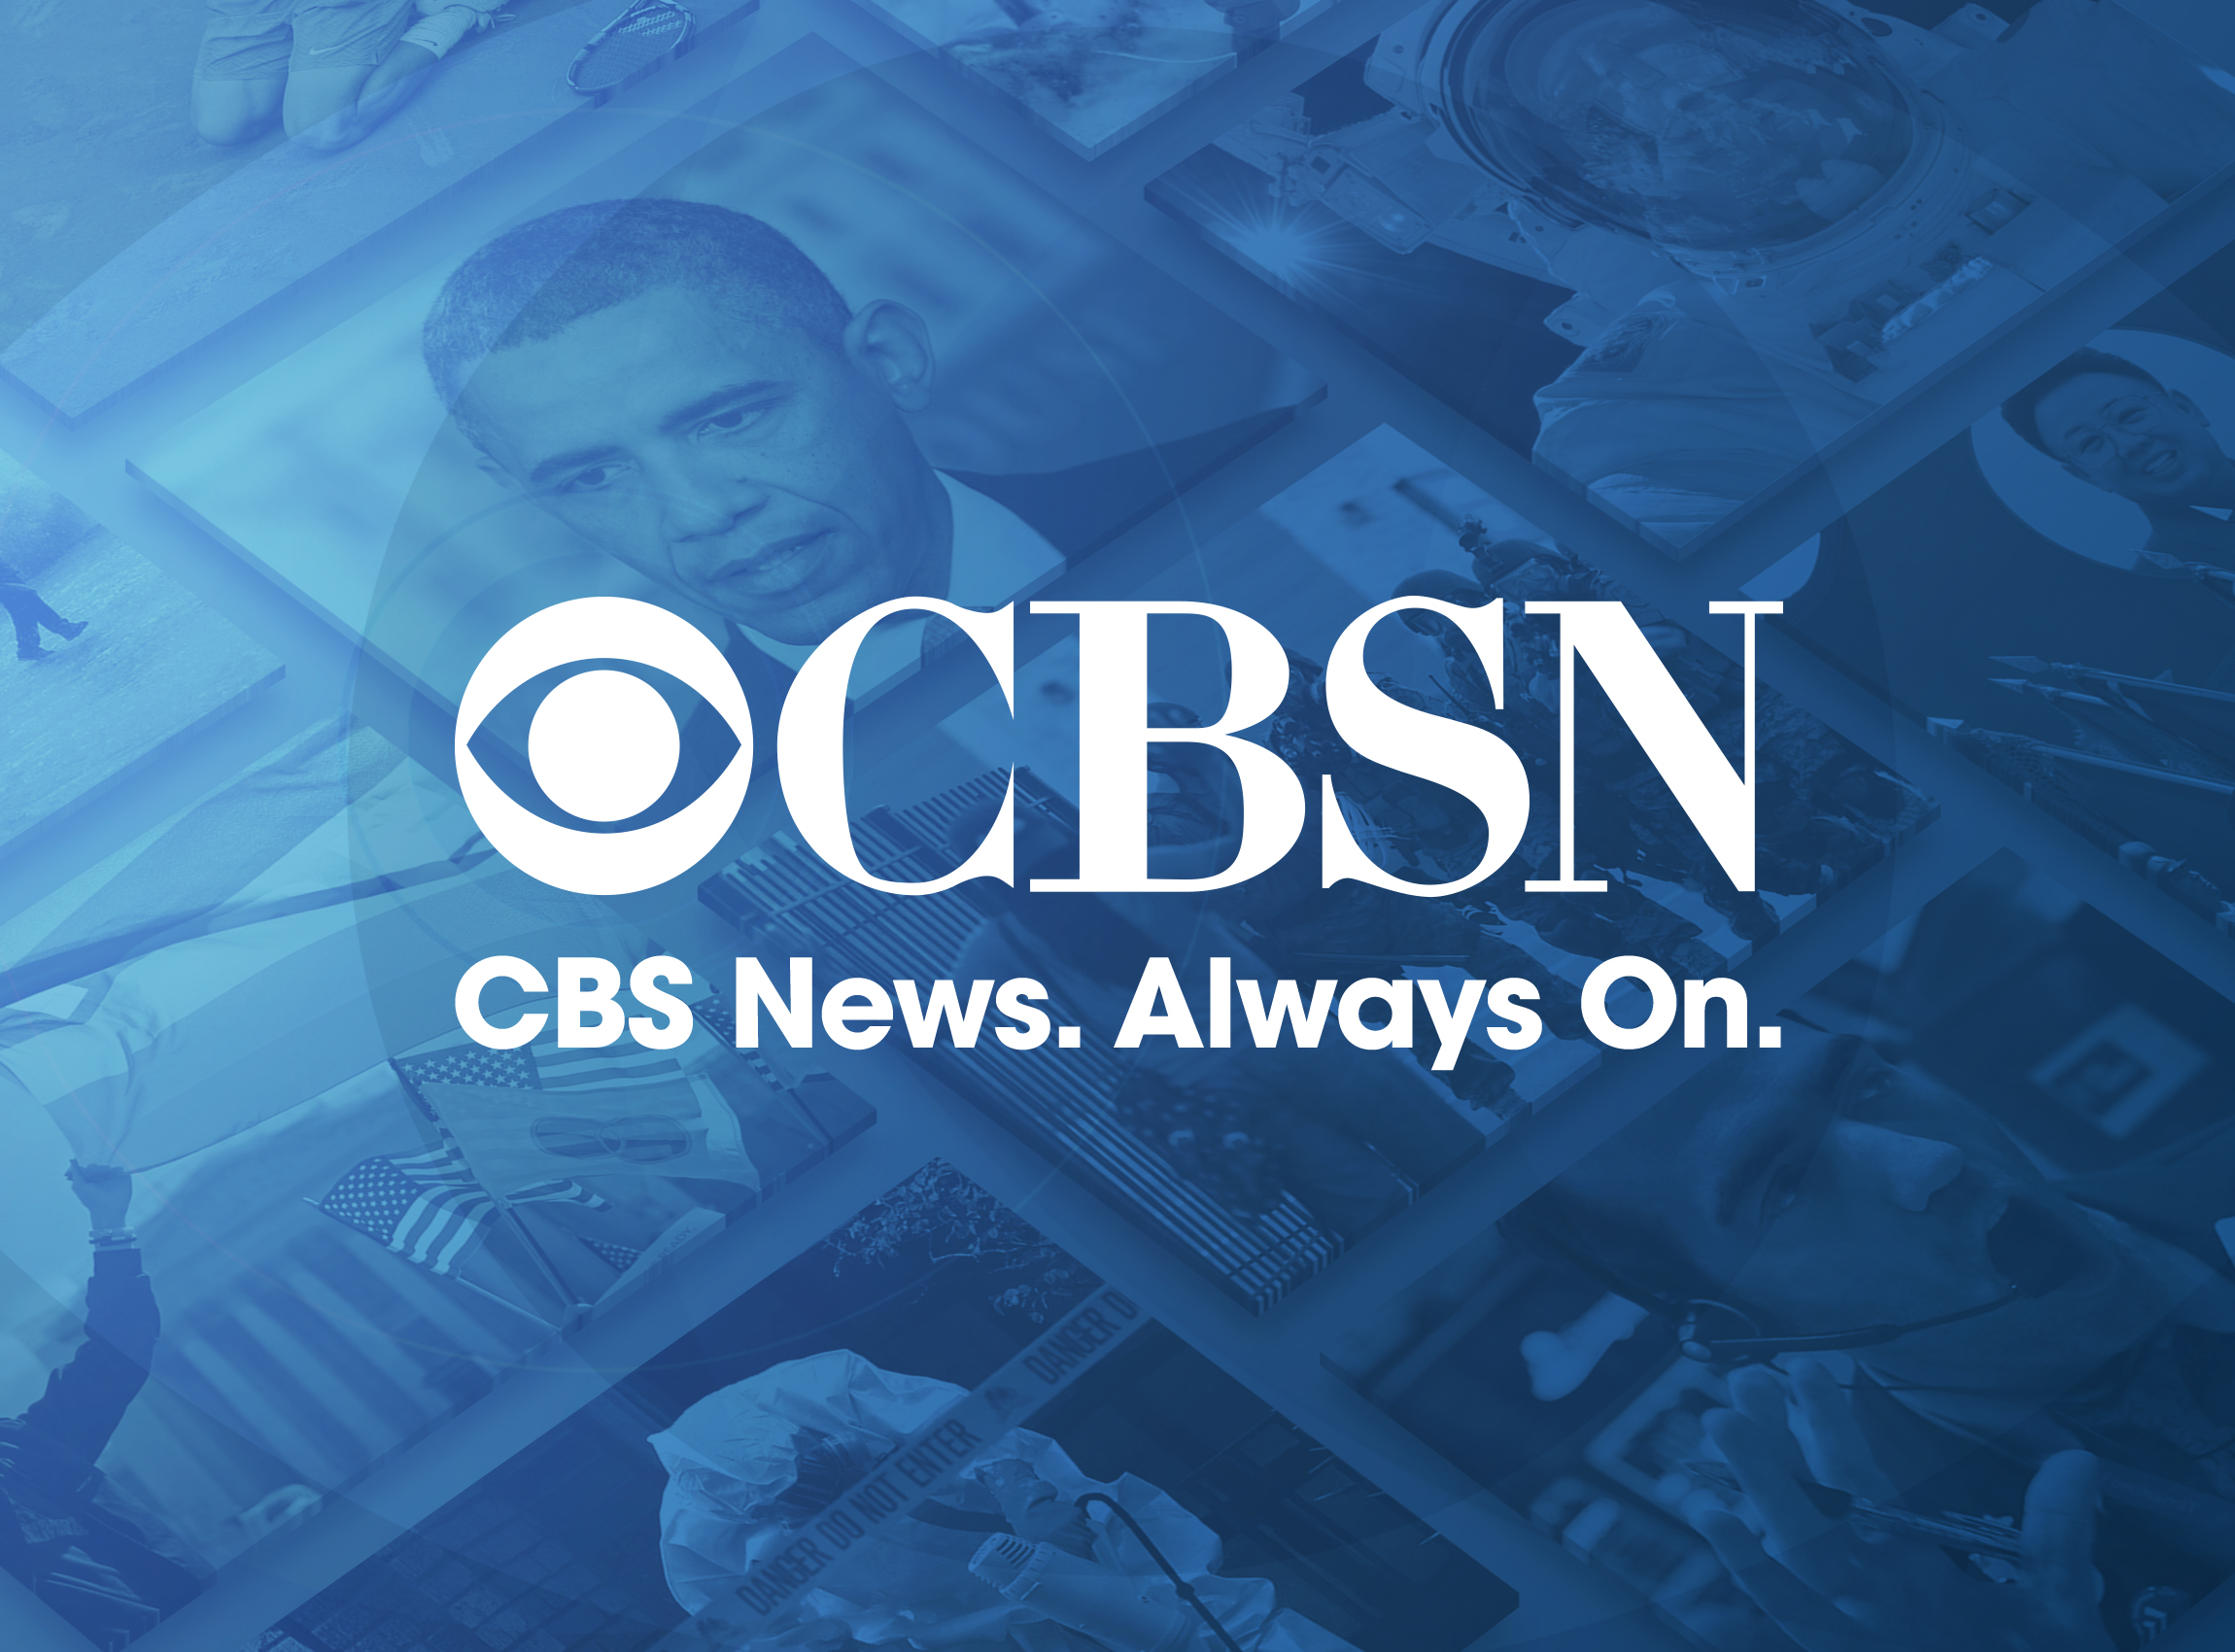 New on CBS News: CBSN, the Live, Anchored Streaming News Network - The Official Roku Blog